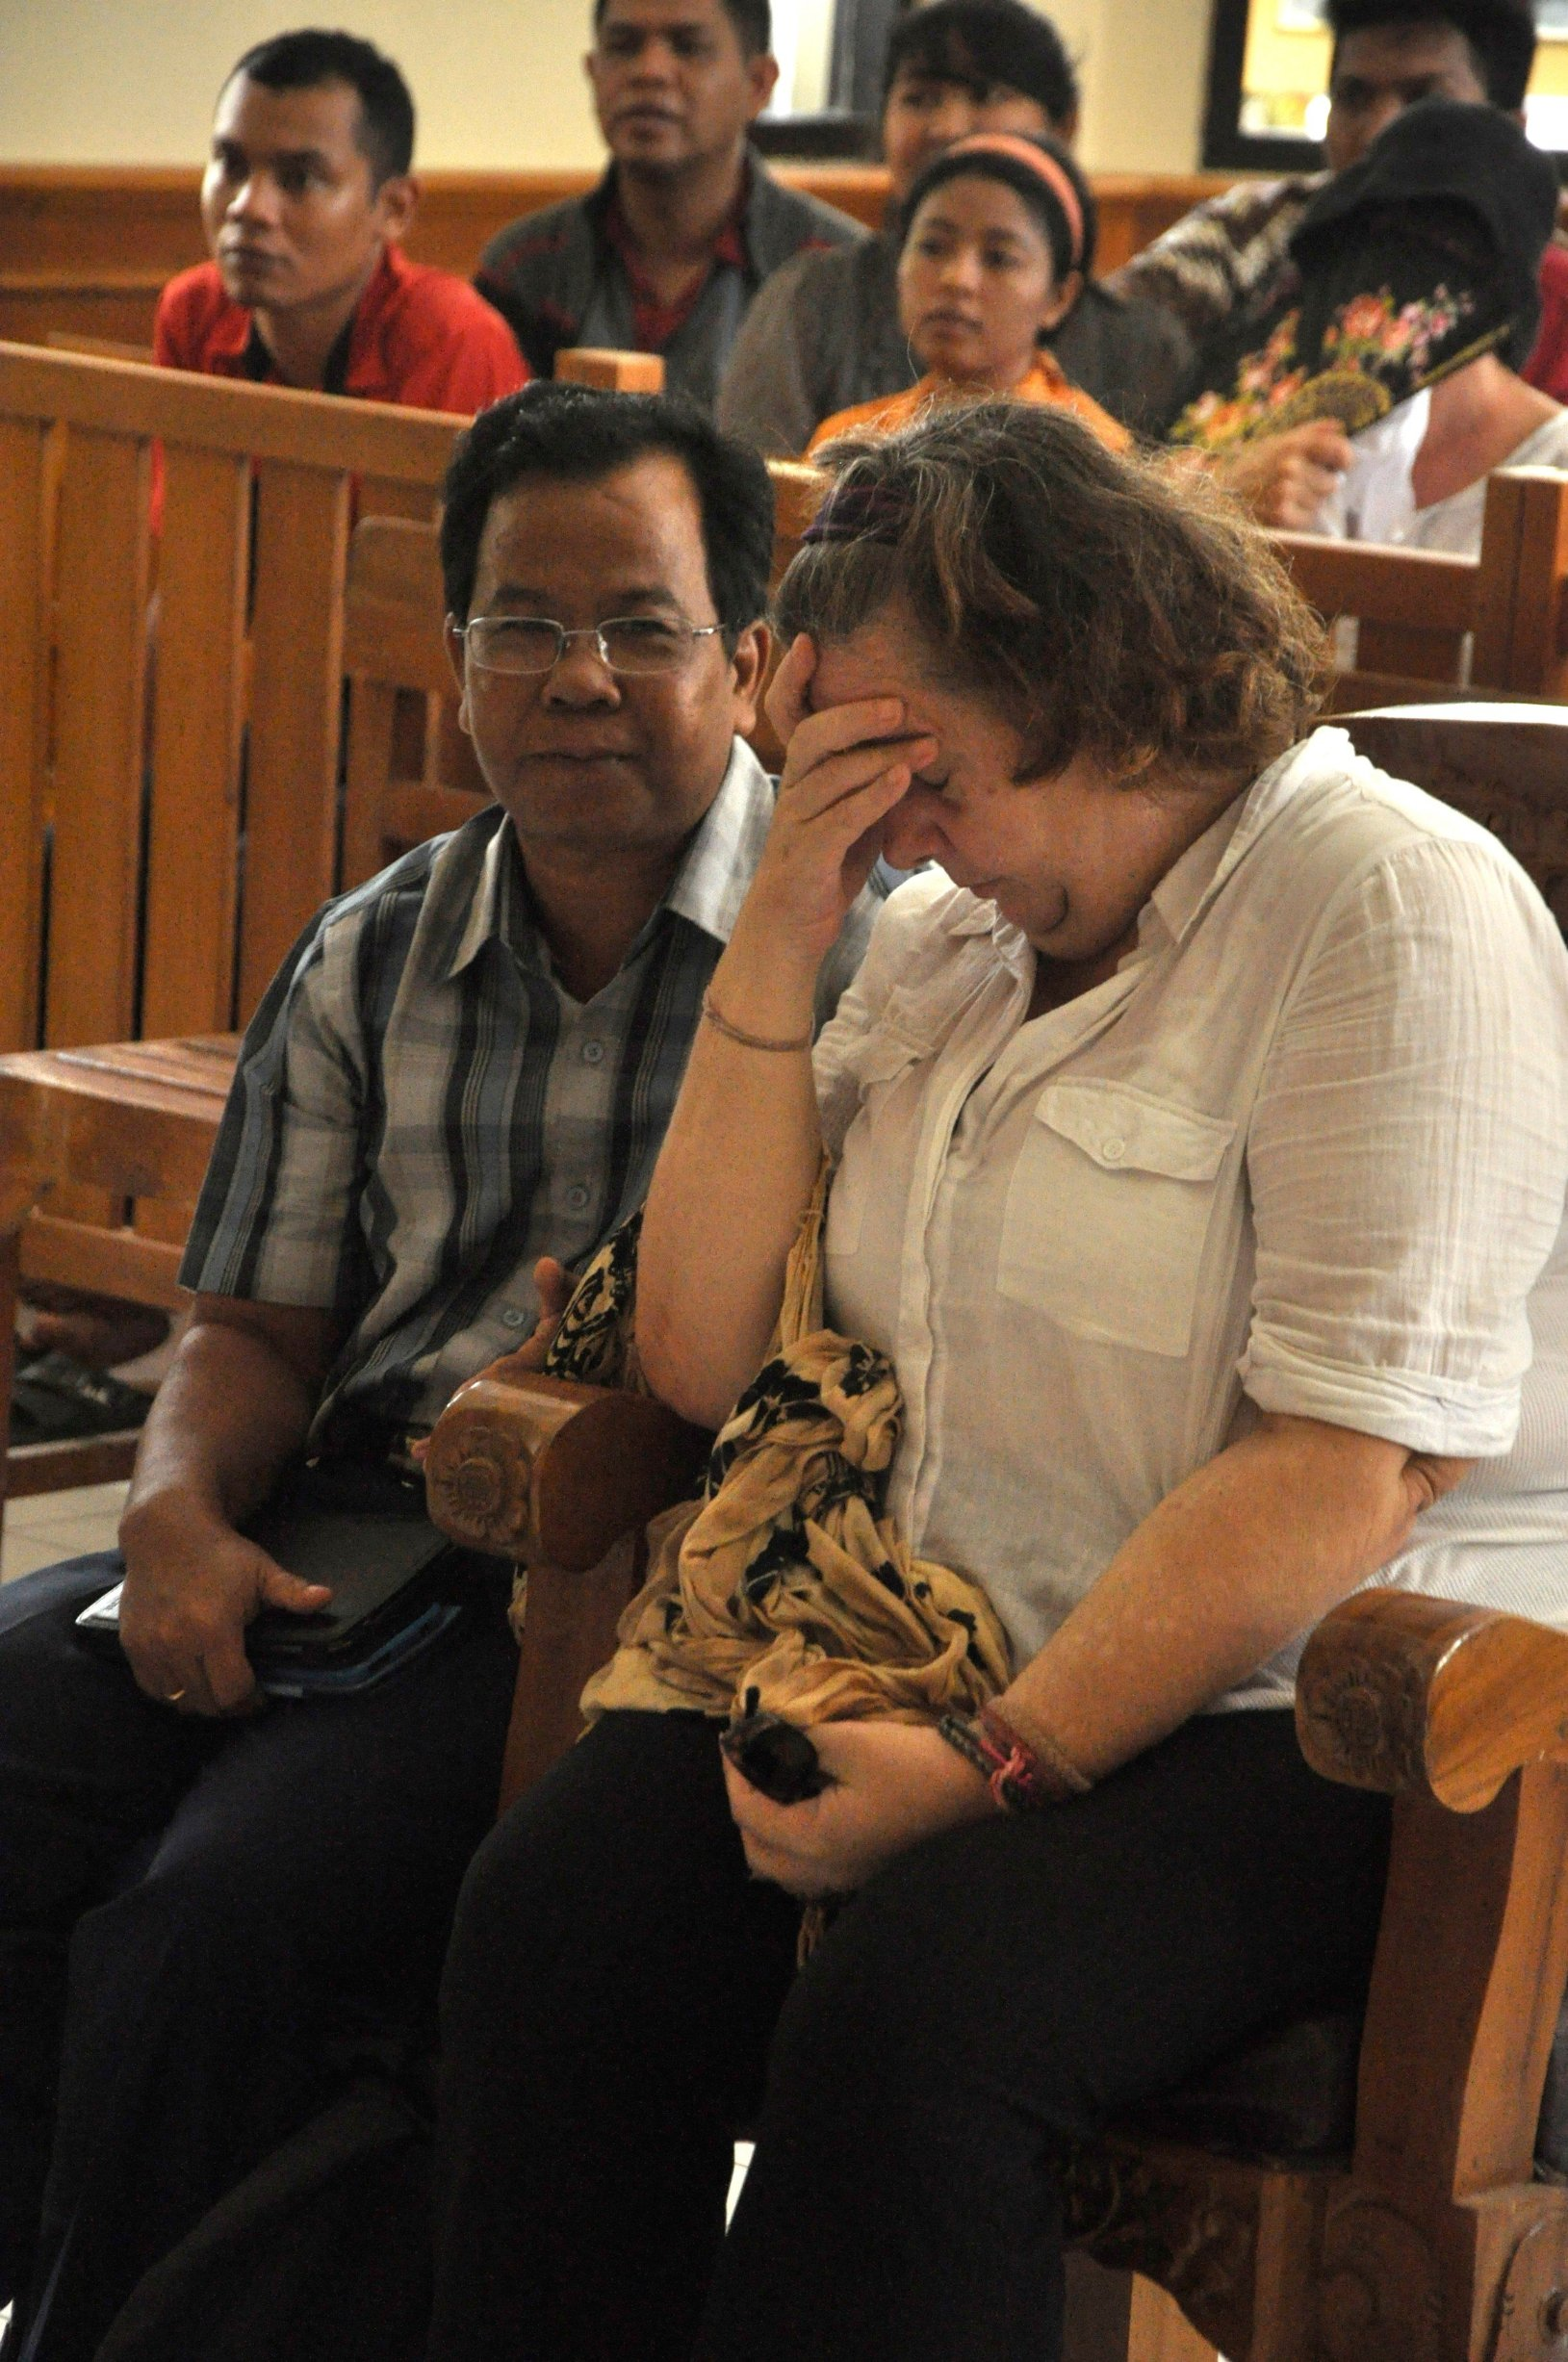 BALI, INDONESIA - JANUARY 22: Lindsay Sandiford, 56, listens to her interpreter while appearing in court for drug trafficking on January 22, 2013 in Bali, Indonesia., Image: 152039108, License: Rights-managed, Restrictions: , Model Release: no, Credit line: Profimedia, Barcroft Media